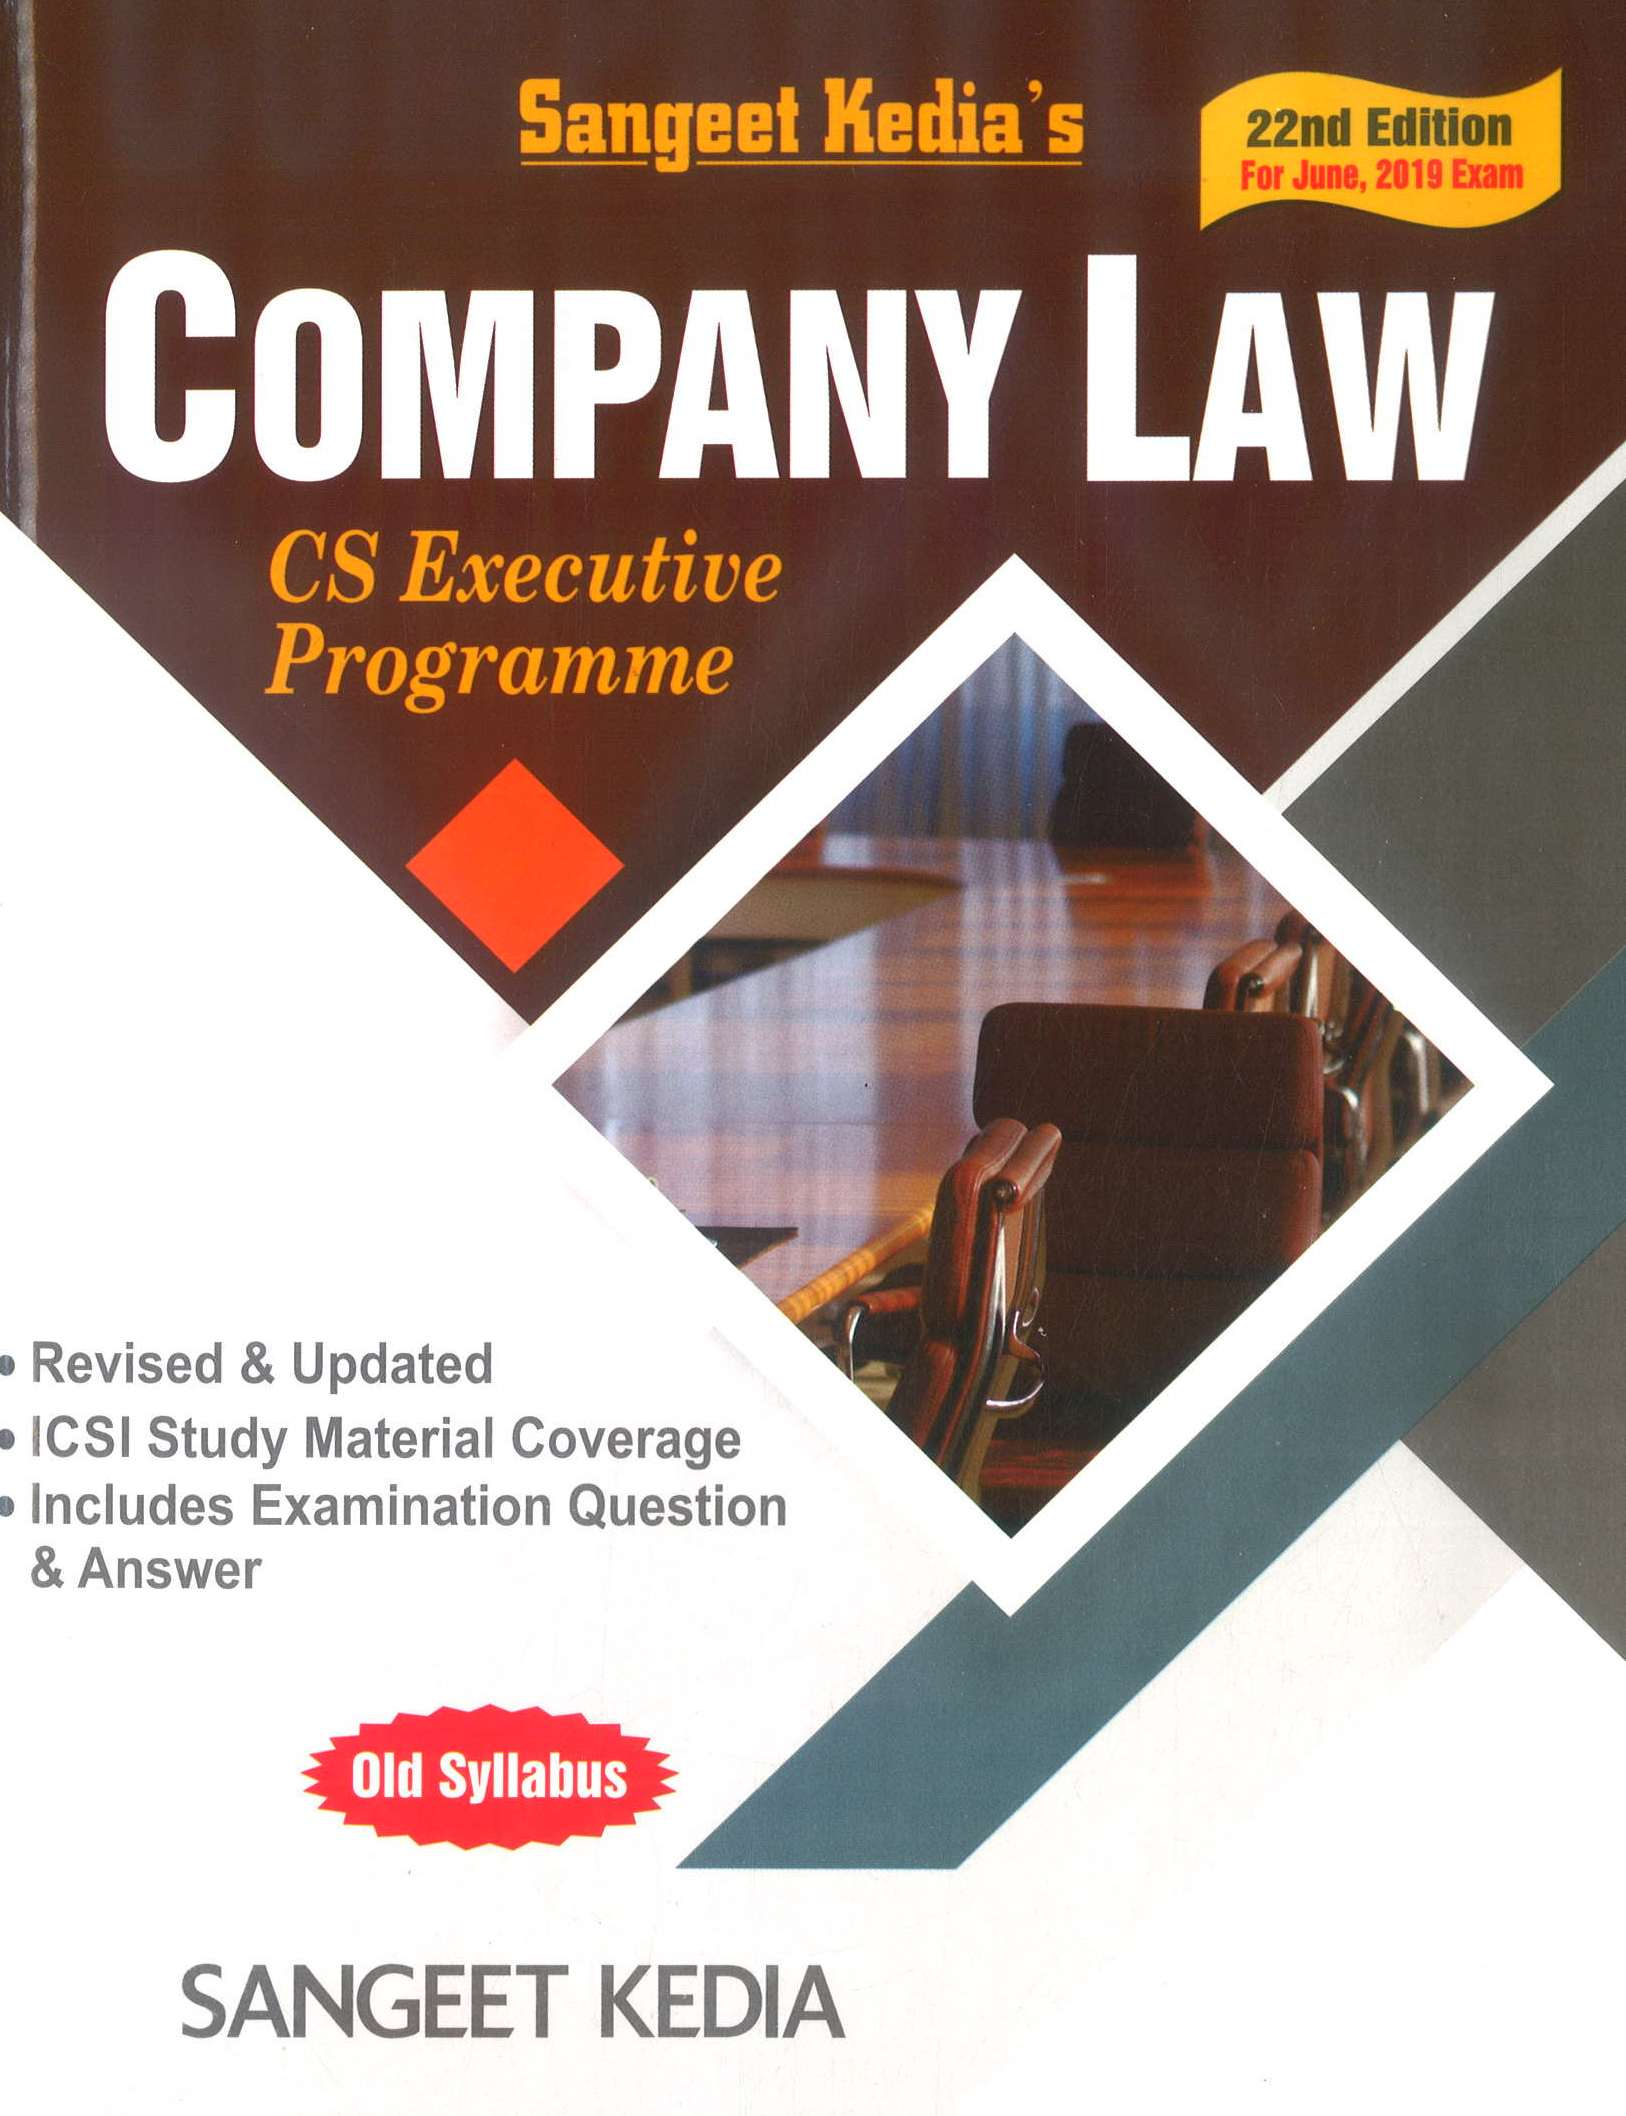 Pooja Law House For CS Executive Programme Company Law by Sangeet Kedia Applicable For June 2019 Exam (Pooja Law House Publishing) Edition 22nd, 2019